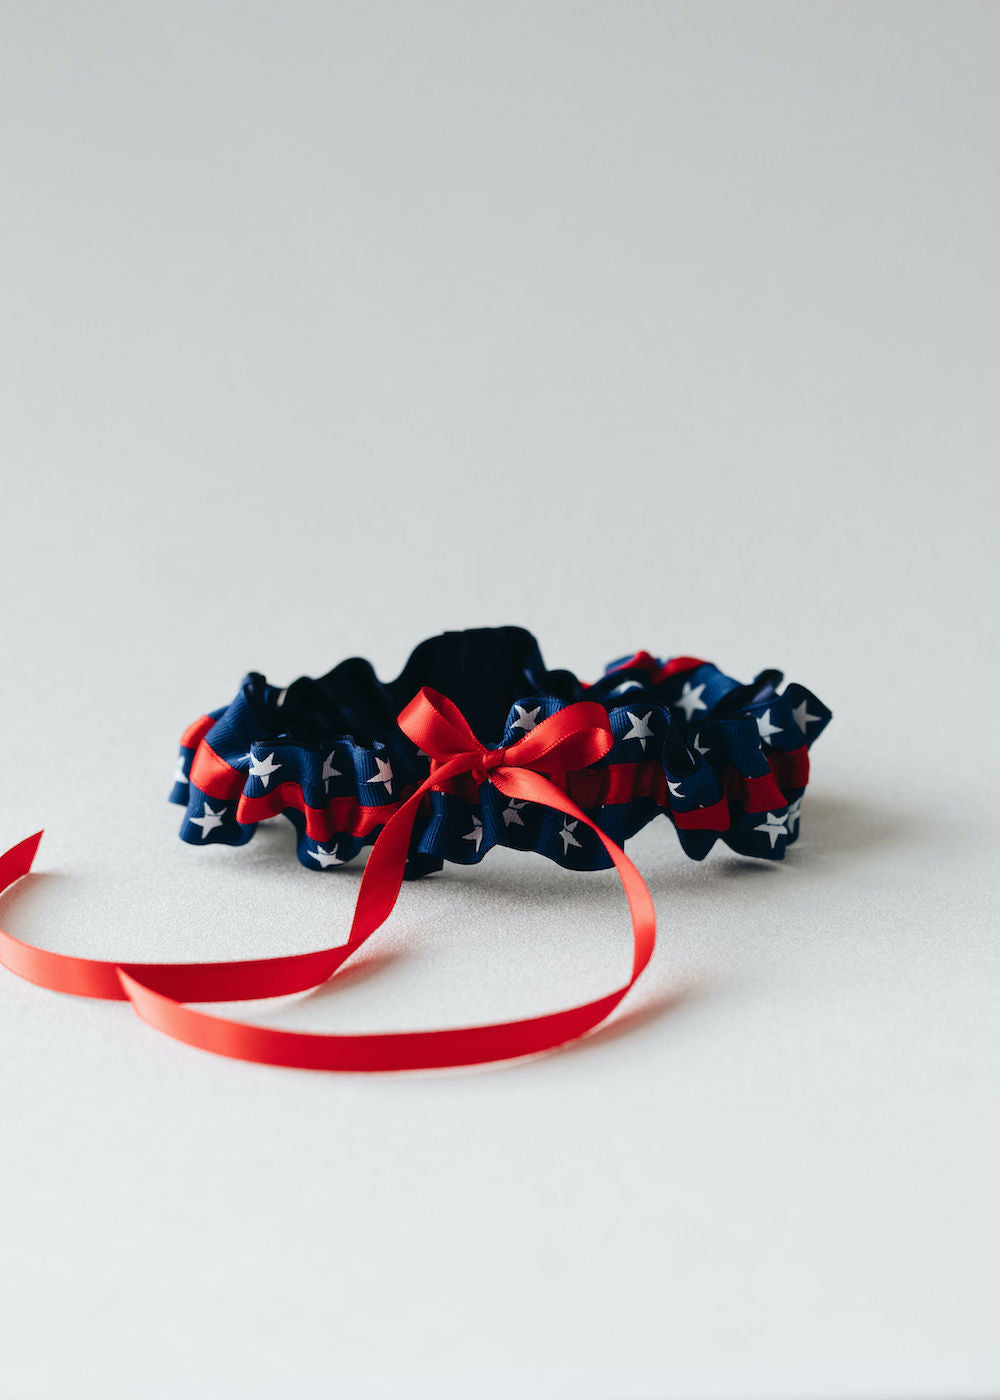 patriotic usa themed, red, white & blue wedding garter set personalized with couple's names and wedding date handmade bridal accessory by The Garter Girl